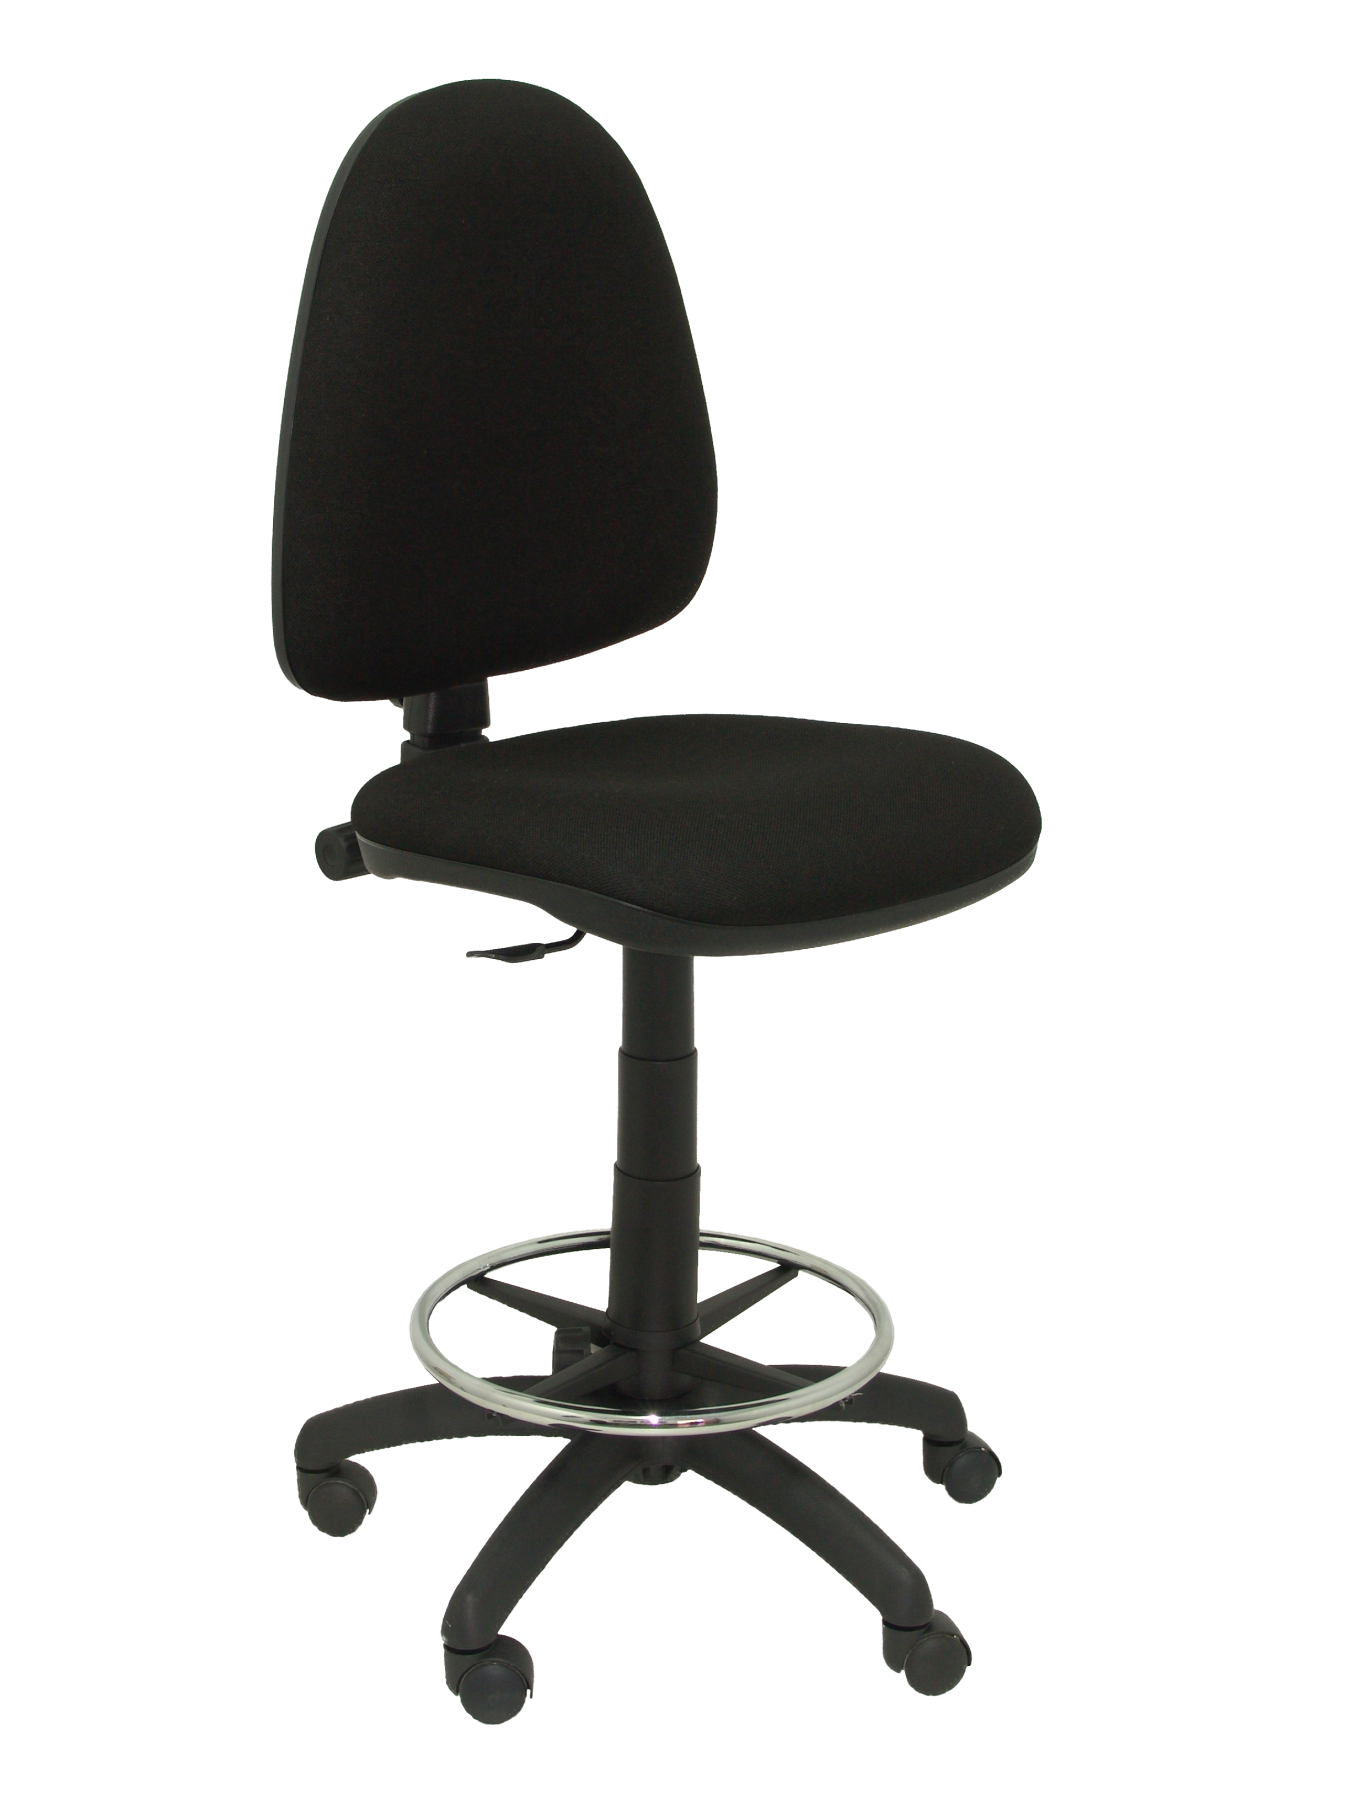 Stool Ergonomic With Permanent Contact's House Mechanism, Dimmable In High Altitude And Hoop Foot Pegs Chrome-up Seat And Res